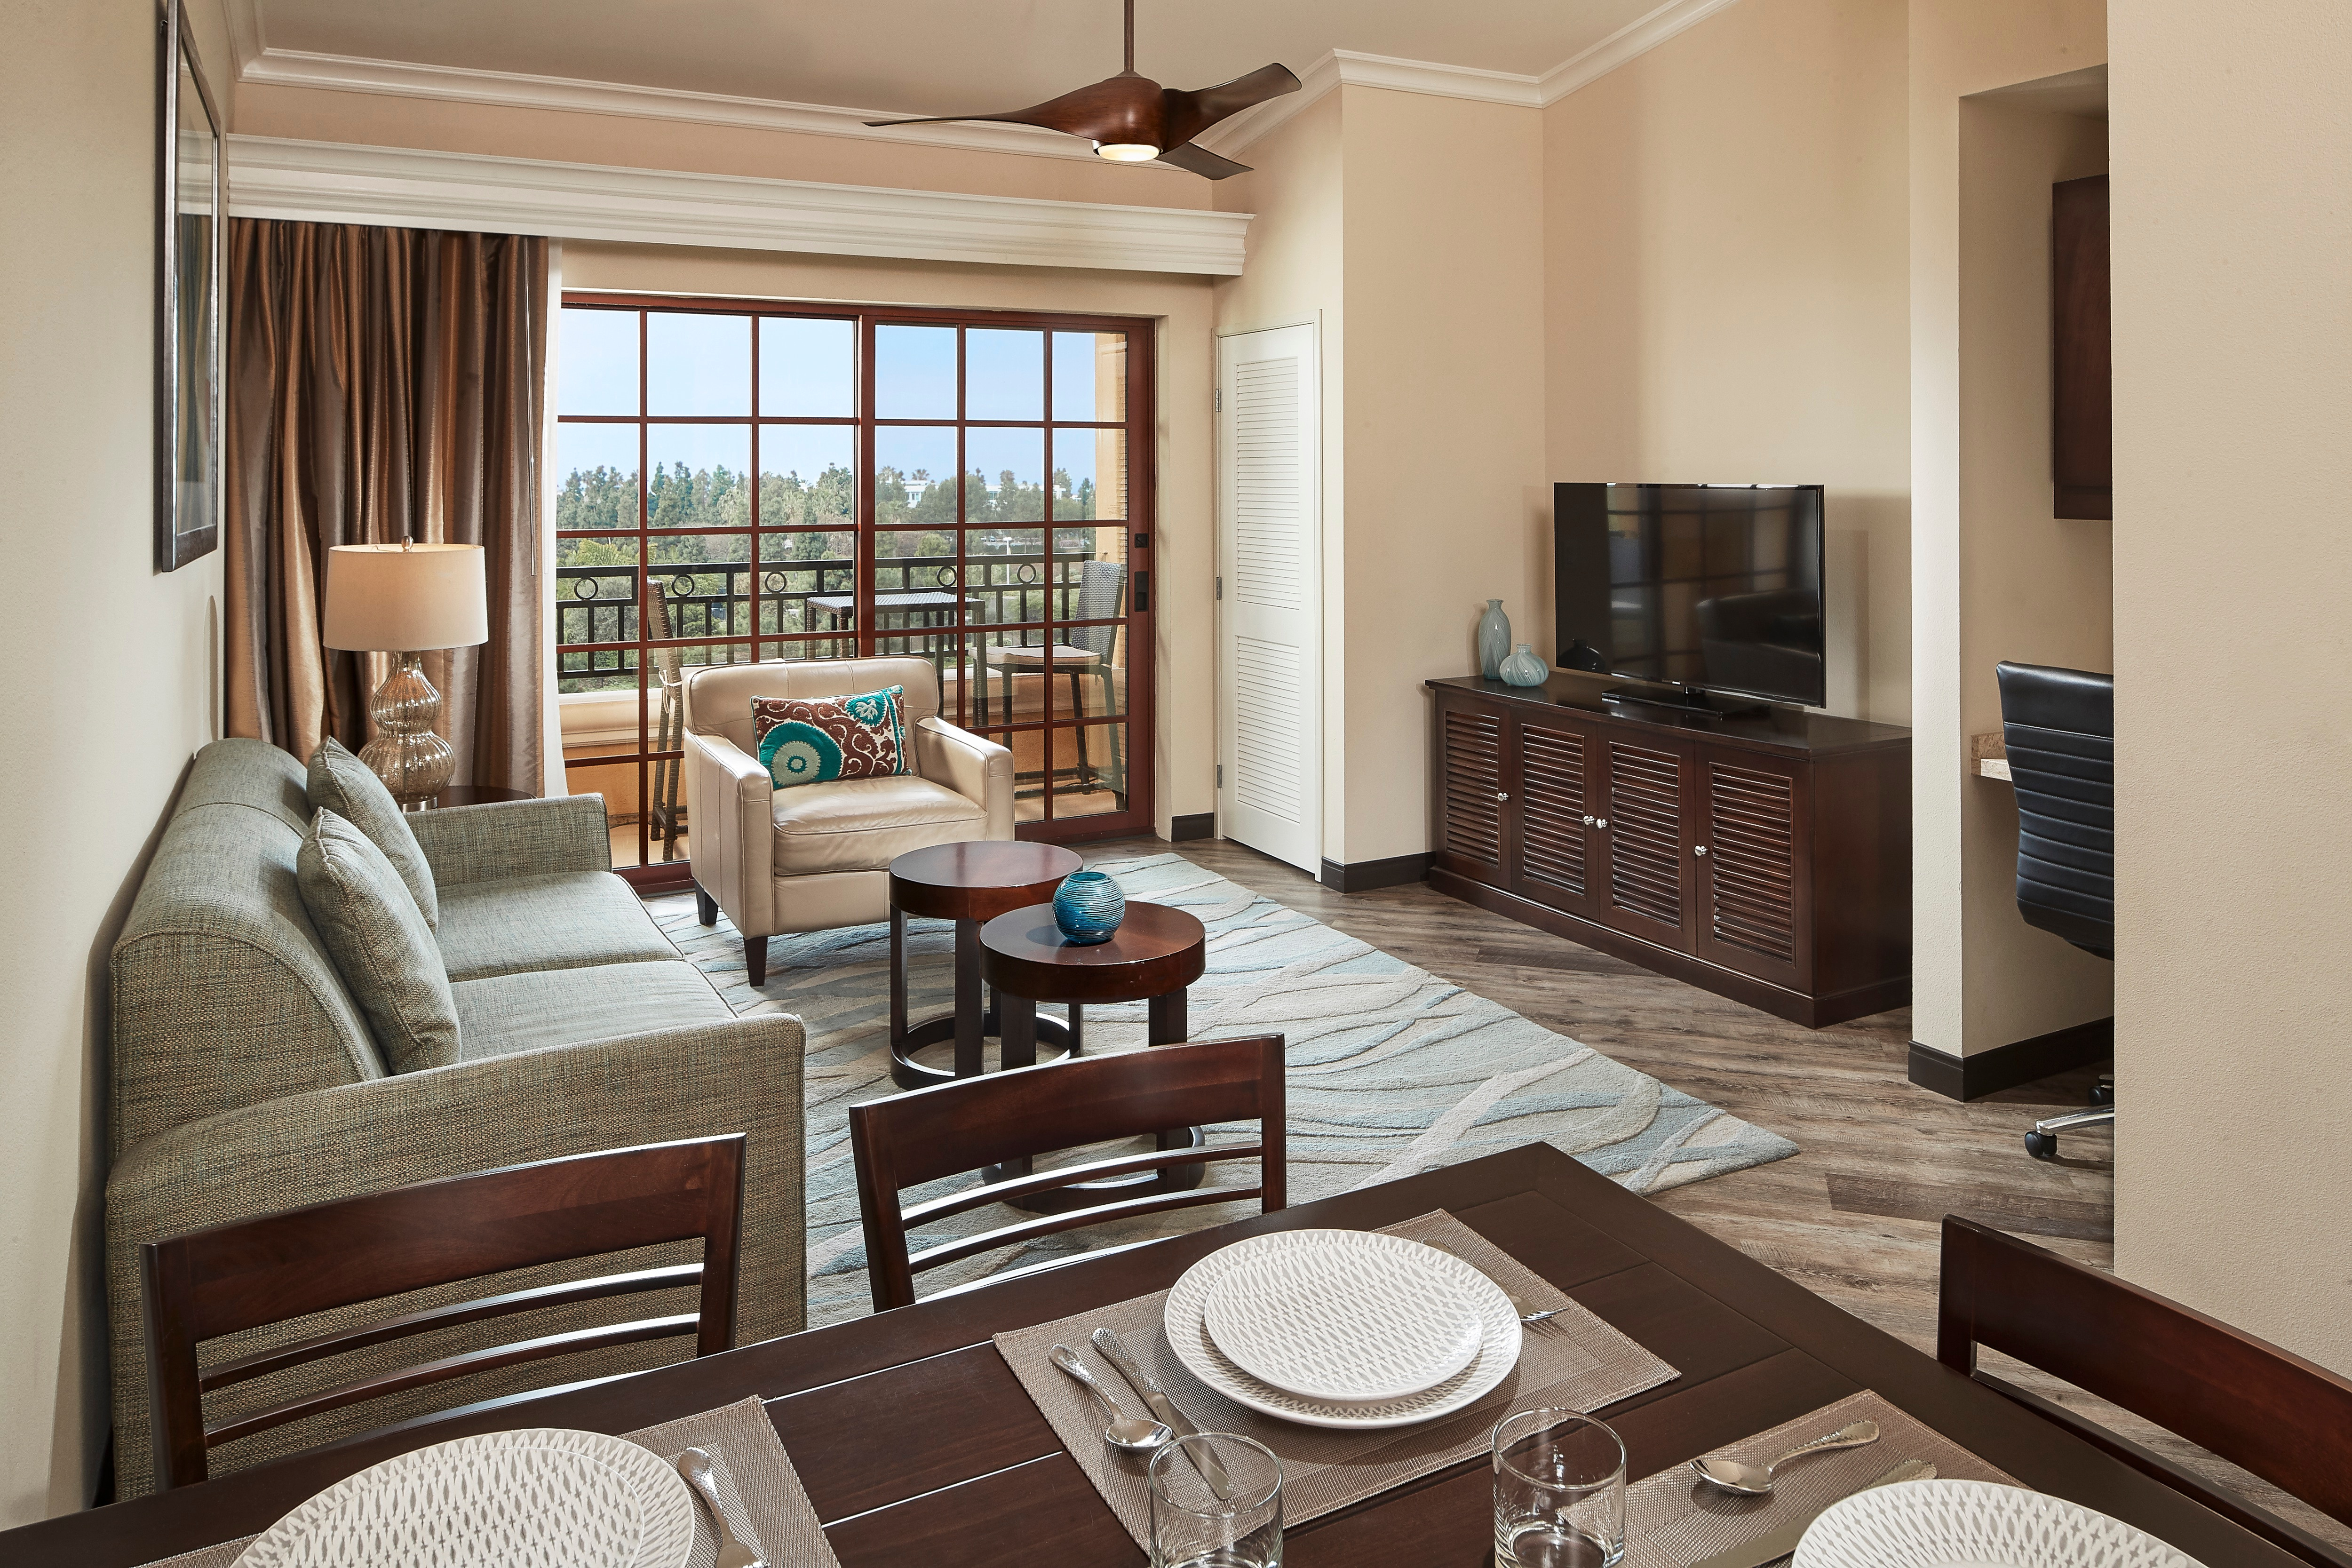 Hilton Grand Vacations suite interior, including dinning space, living room and balcony.